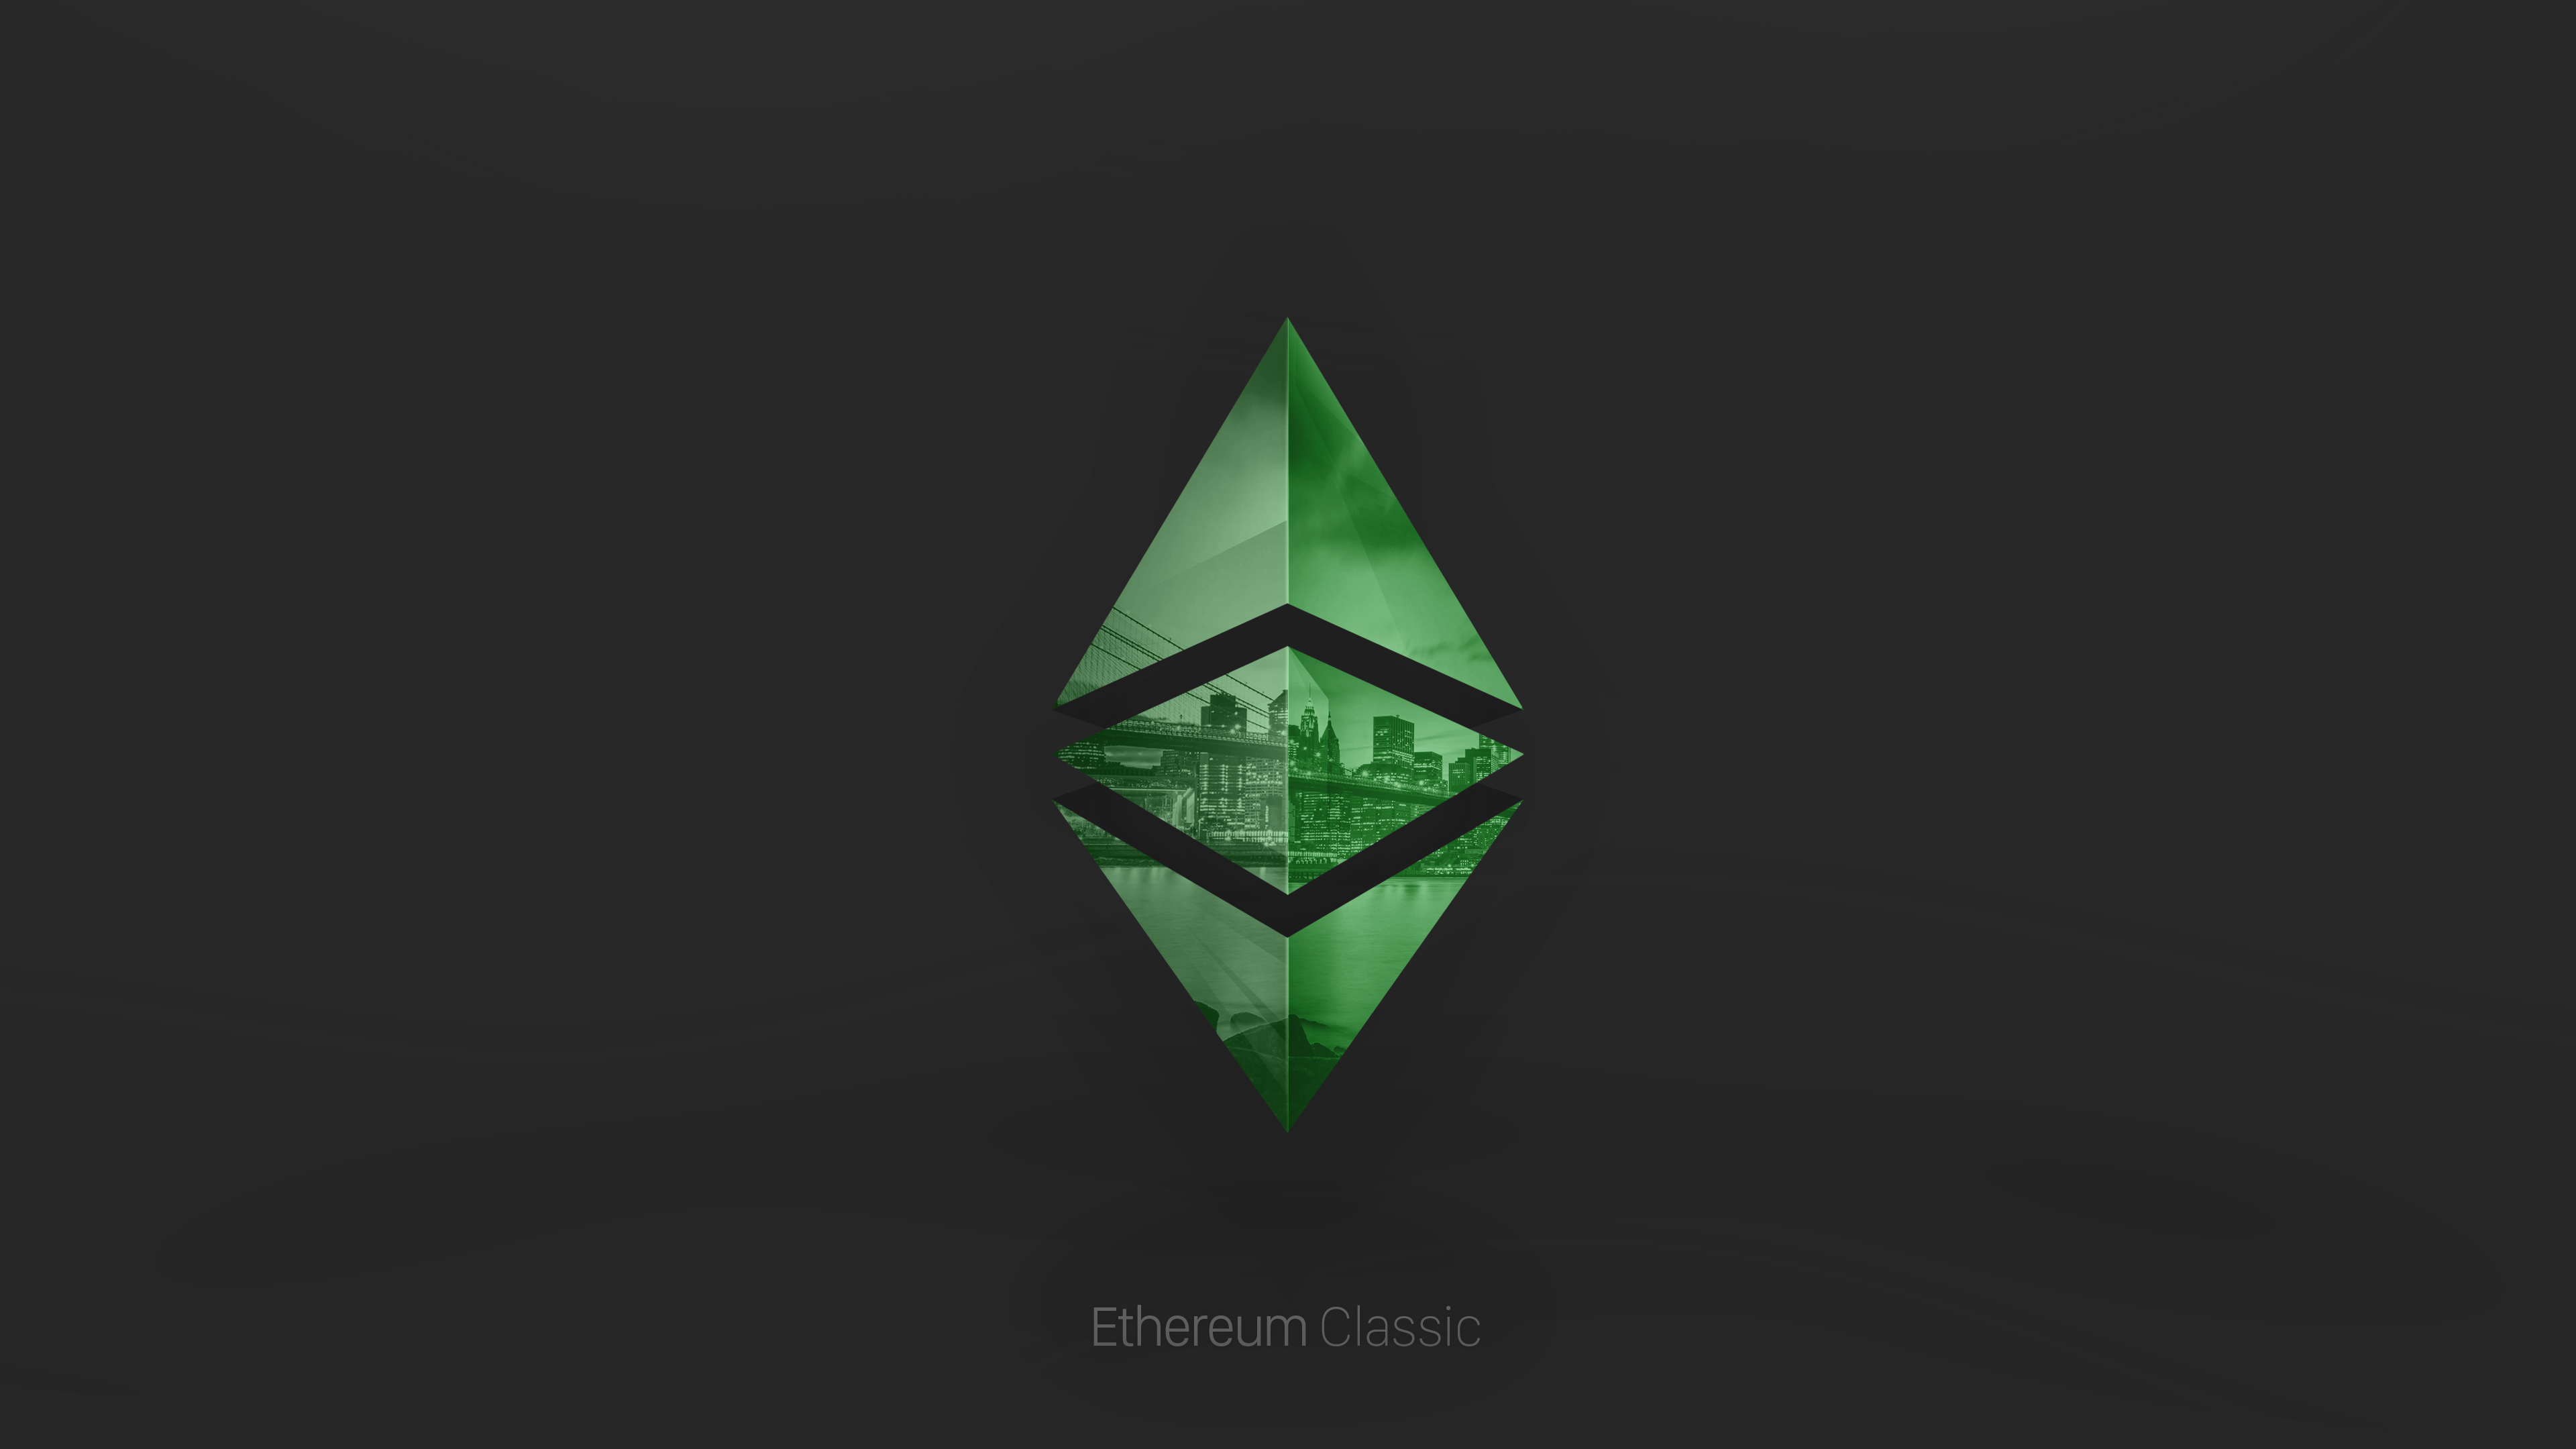 Ethereum Classic Wallpaper [3840x2160] for the longHODLers 3840x2160